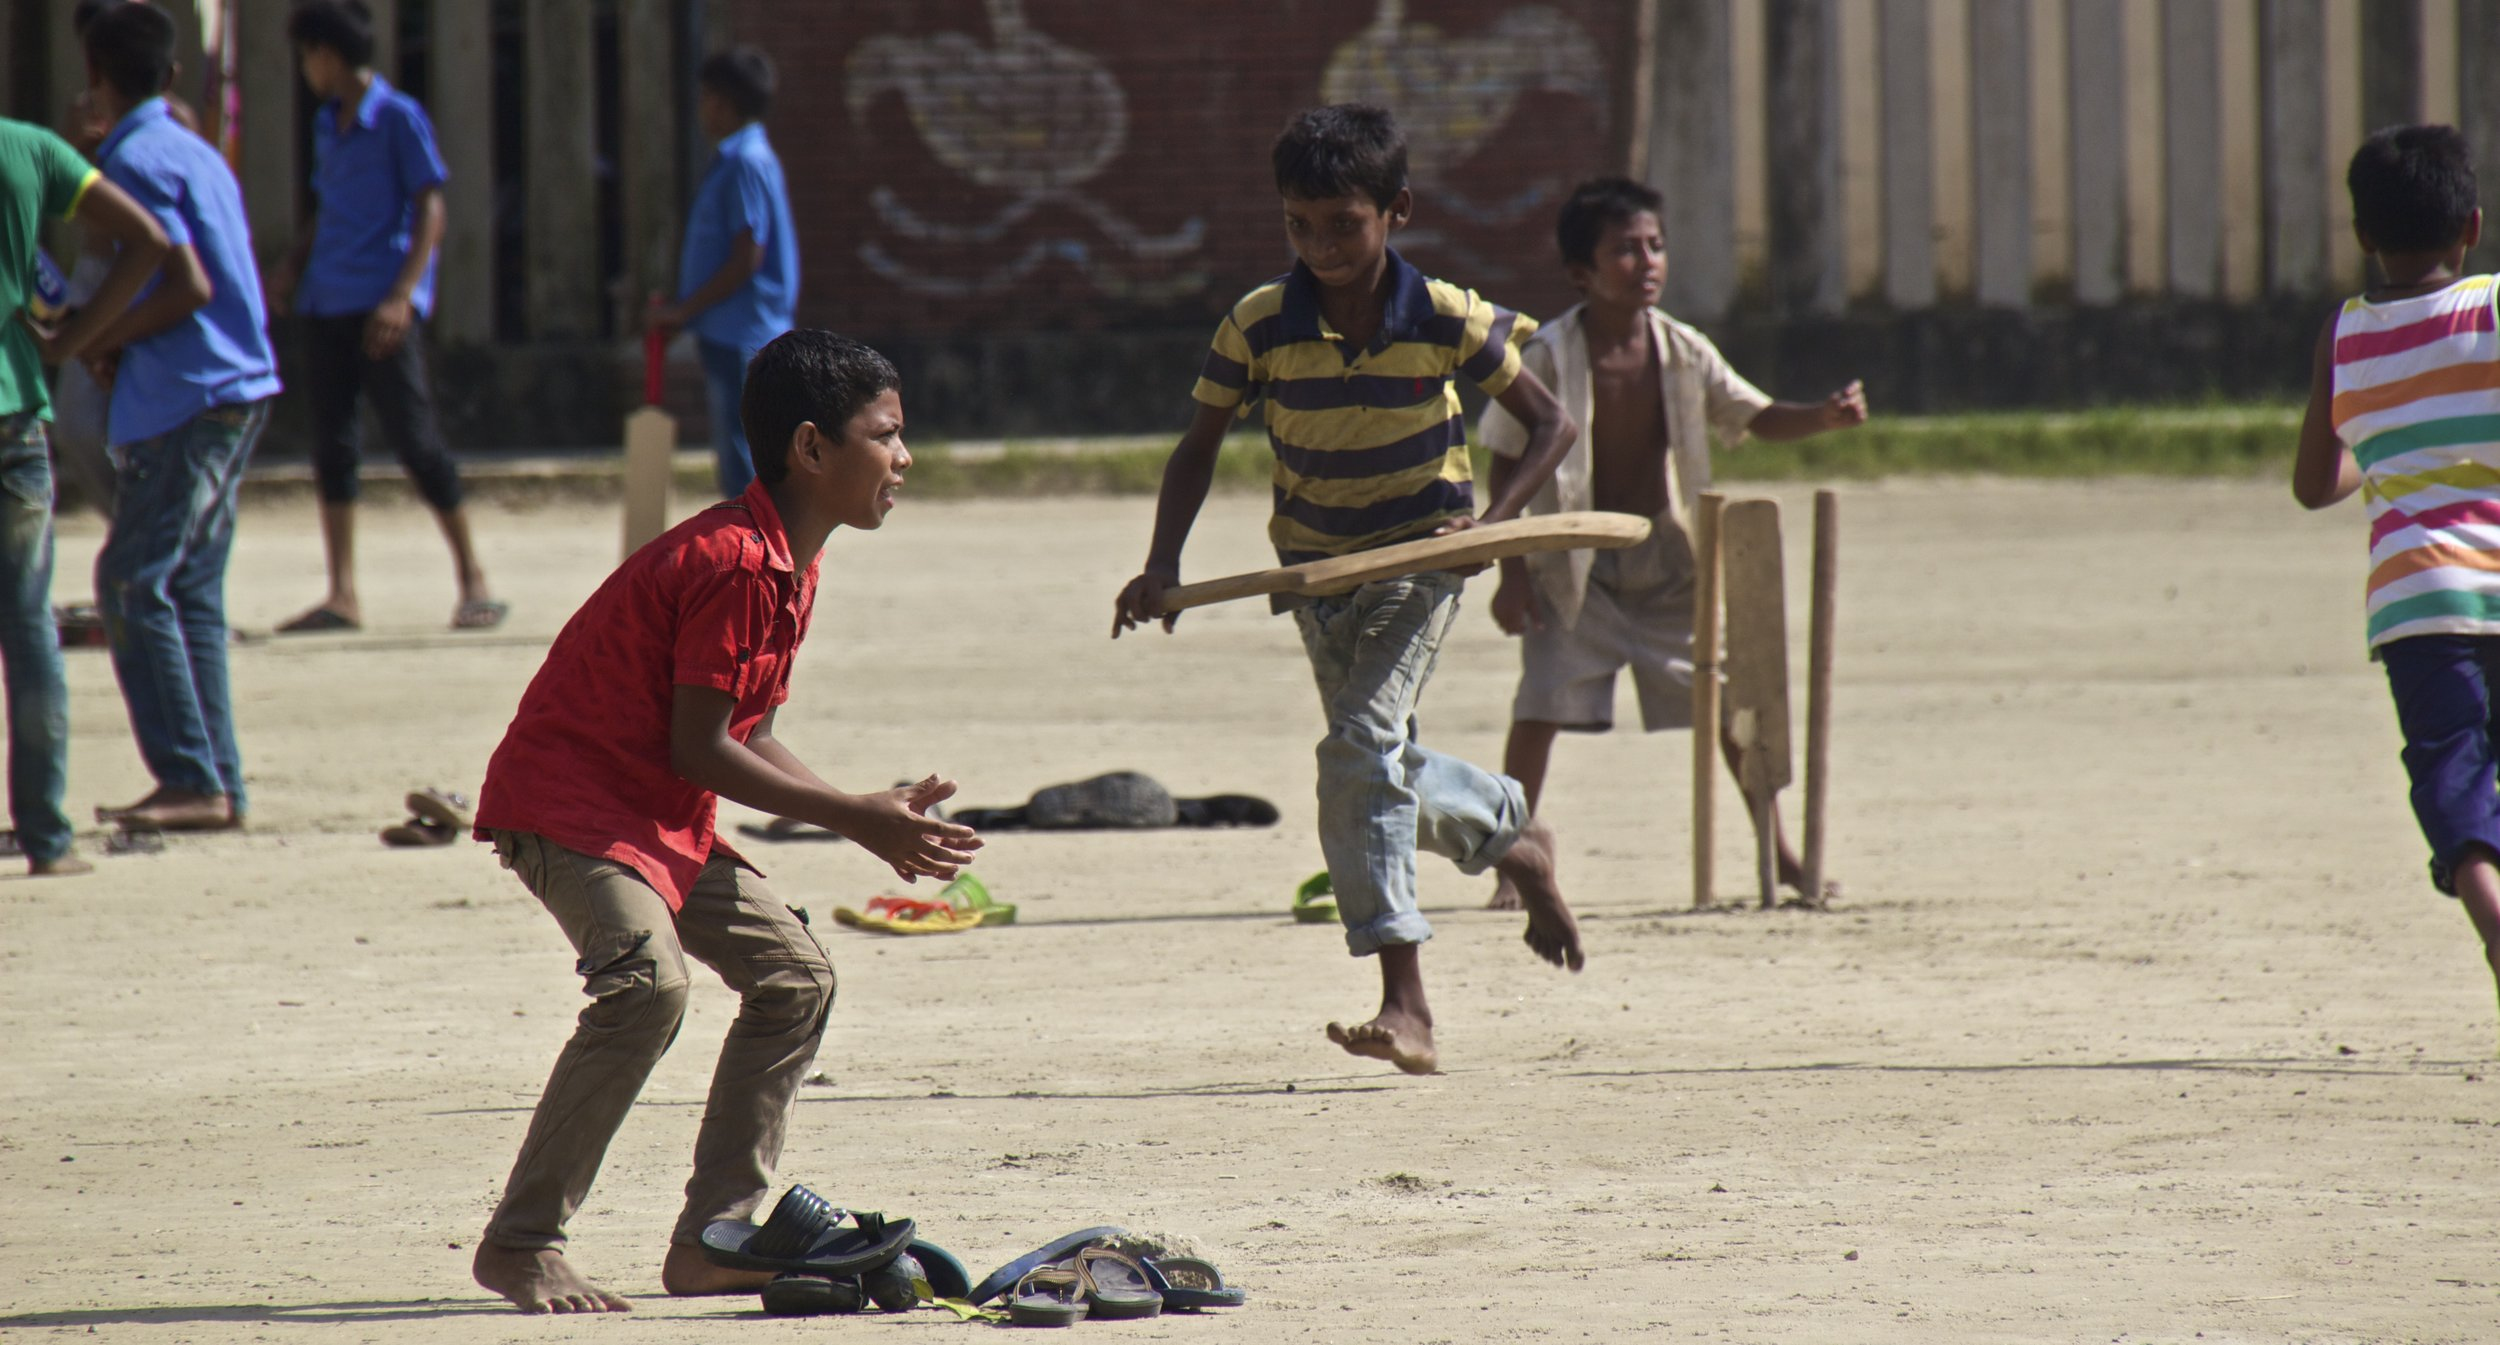 rayer bazar dhaka children playing cricket 6.jpg